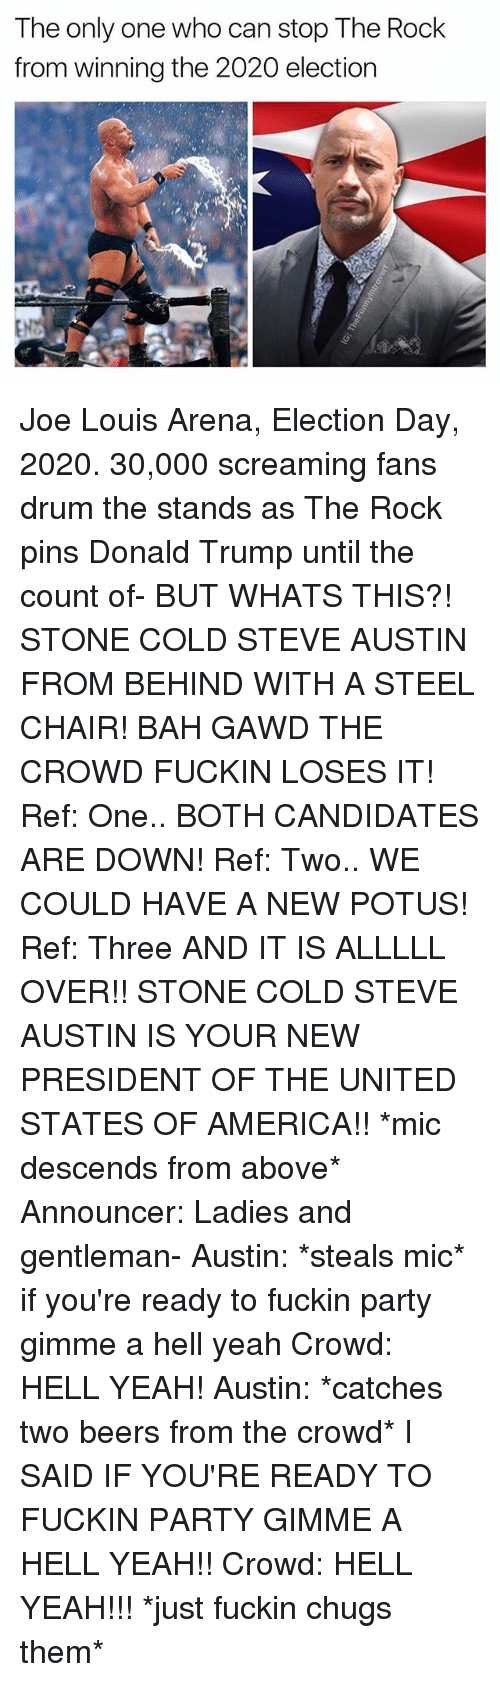 drumming: The only one who can stop The Rock  from winning the 2020 election Joe Louis Arena, Election Day, 2020. 30,000 screaming fans drum the stands as The Rock pins Donald Trump until the count of- BUT WHATS THIS?! STONE COLD STEVE AUSTIN FROM BEHIND WITH A STEEL CHAIR! BAH GAWD THE CROWD FUCKIN LOSES IT! Ref: One.. BOTH CANDIDATES ARE DOWN! Ref: Two.. WE COULD HAVE A NEW POTUS! Ref: Three AND IT IS ALLLLL OVER!! STONE COLD STEVE AUSTIN IS YOUR NEW PRESIDENT OF THE UNITED STATES OF AMERICA!! *mic descends from above* Announcer: Ladies and gentleman- Austin: *steals mic* if you're ready to fuckin party gimme a hell yeah Crowd: HELL YEAH! Austin: *catches two beers from the crowd* I SAID IF YOU'RE READY TO FUCKIN PARTY GIMME A HELL YEAH!! Crowd: HELL YEAH!!! *just fuckin chugs them*